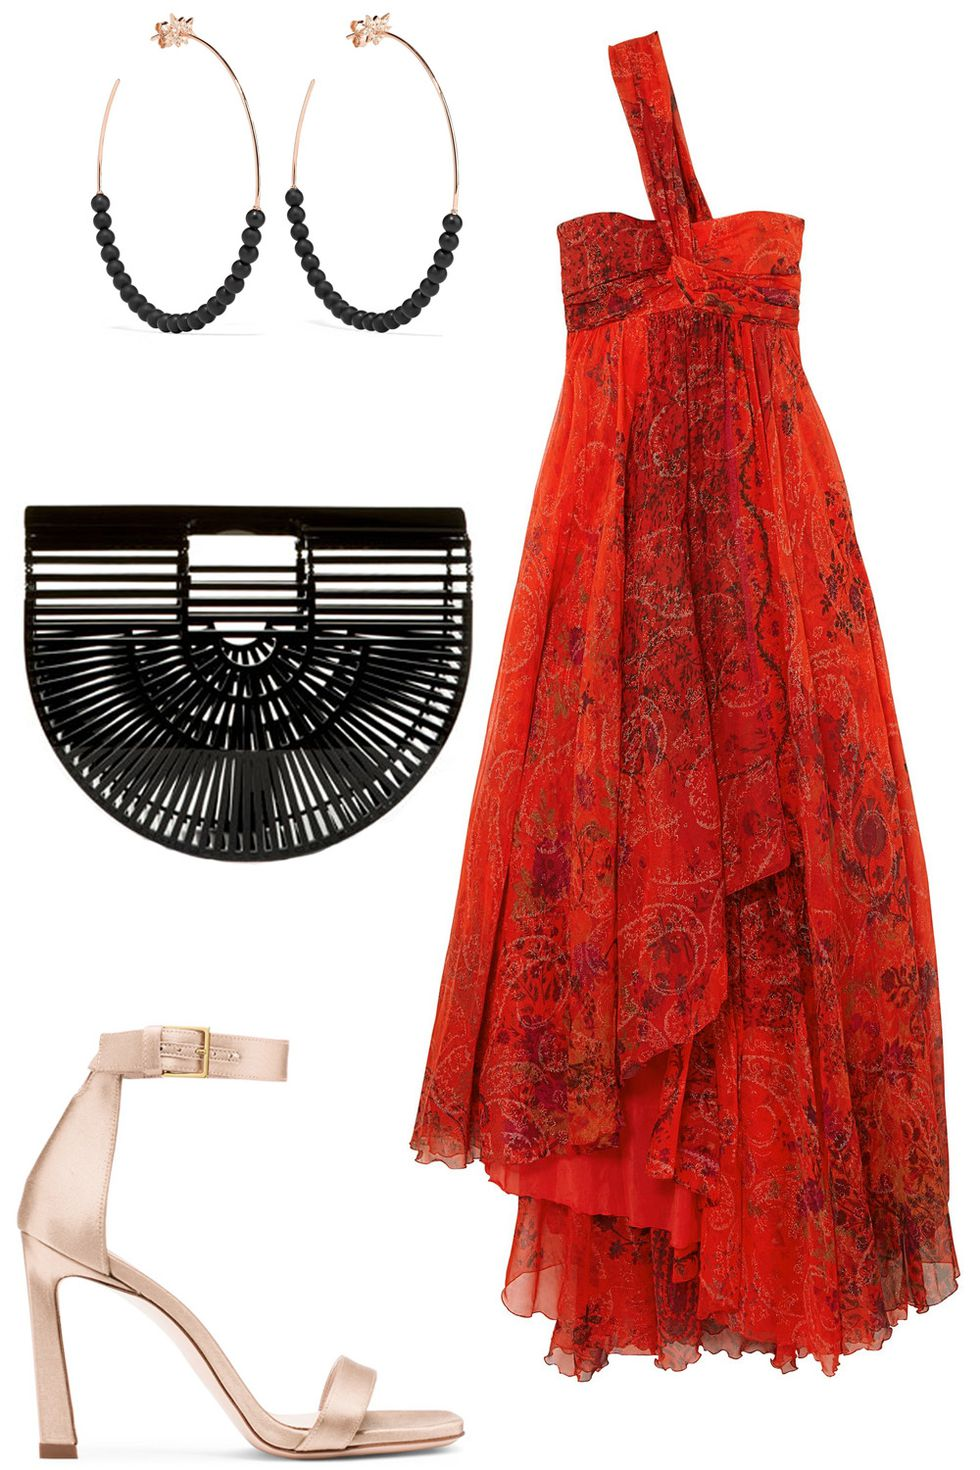 what-to-wear-for-a-summer-wedding-guest-outfit-red-dress-maxi-oneshoulder-hoops-black-bag-clutch-tan-shoe-sandalh-dinner.jpg